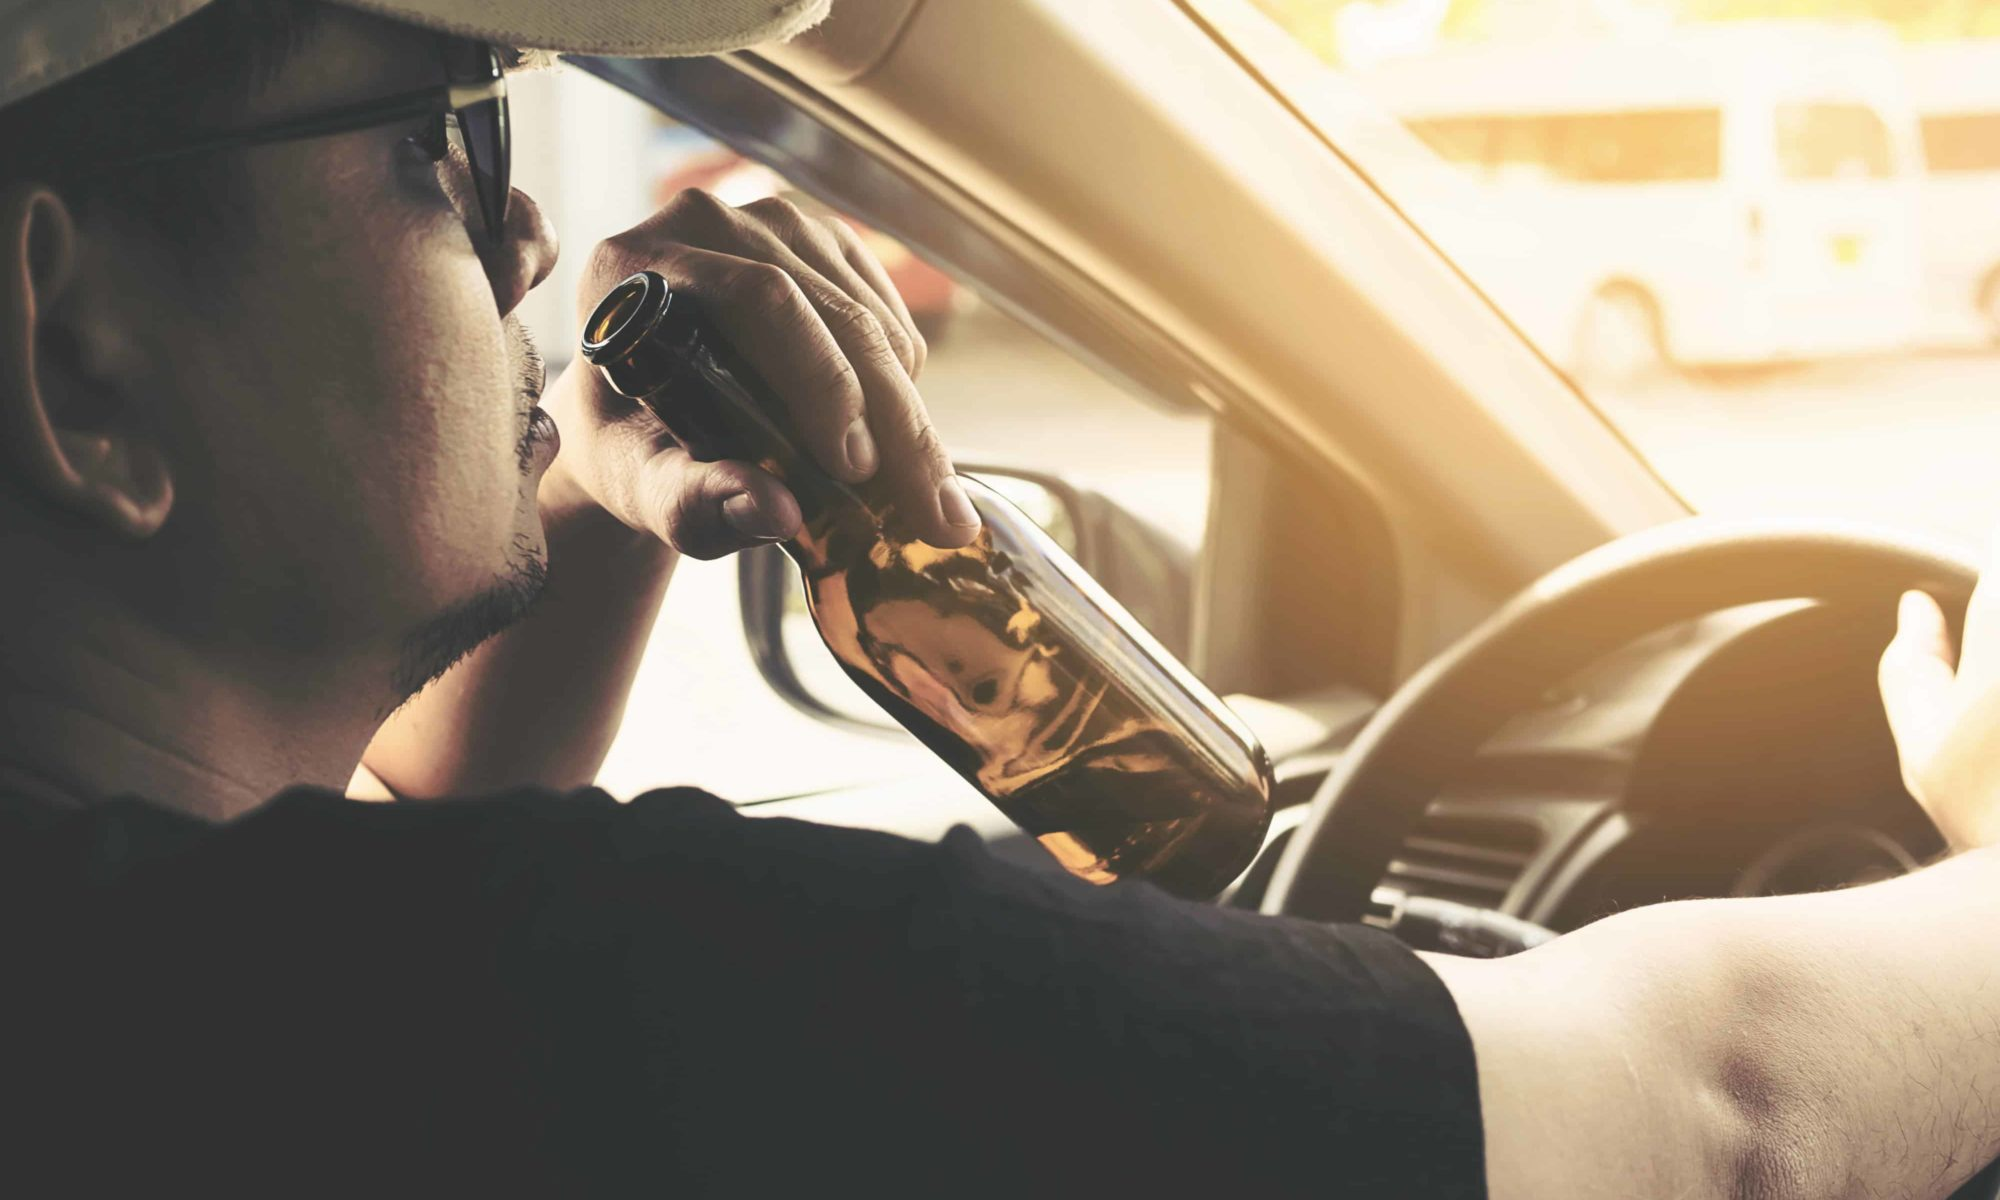 A man drinking a beer while driving, violating Arizona open container laws